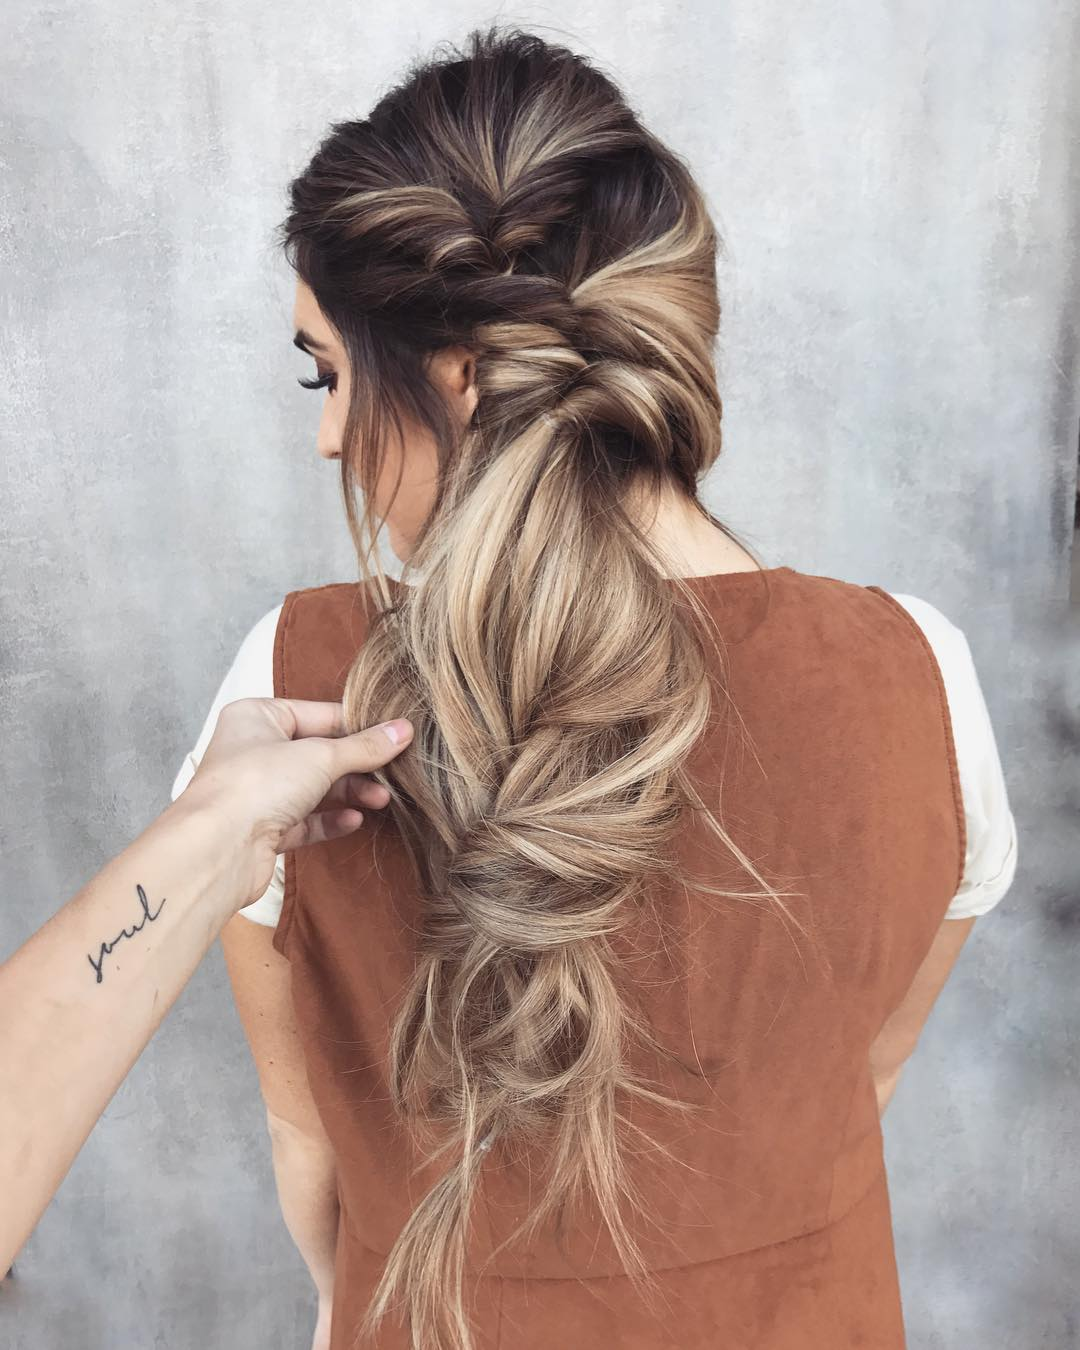 Braided Wedding Hair: 10 Messy Braided Long Hairstyle Ideas For Weddings